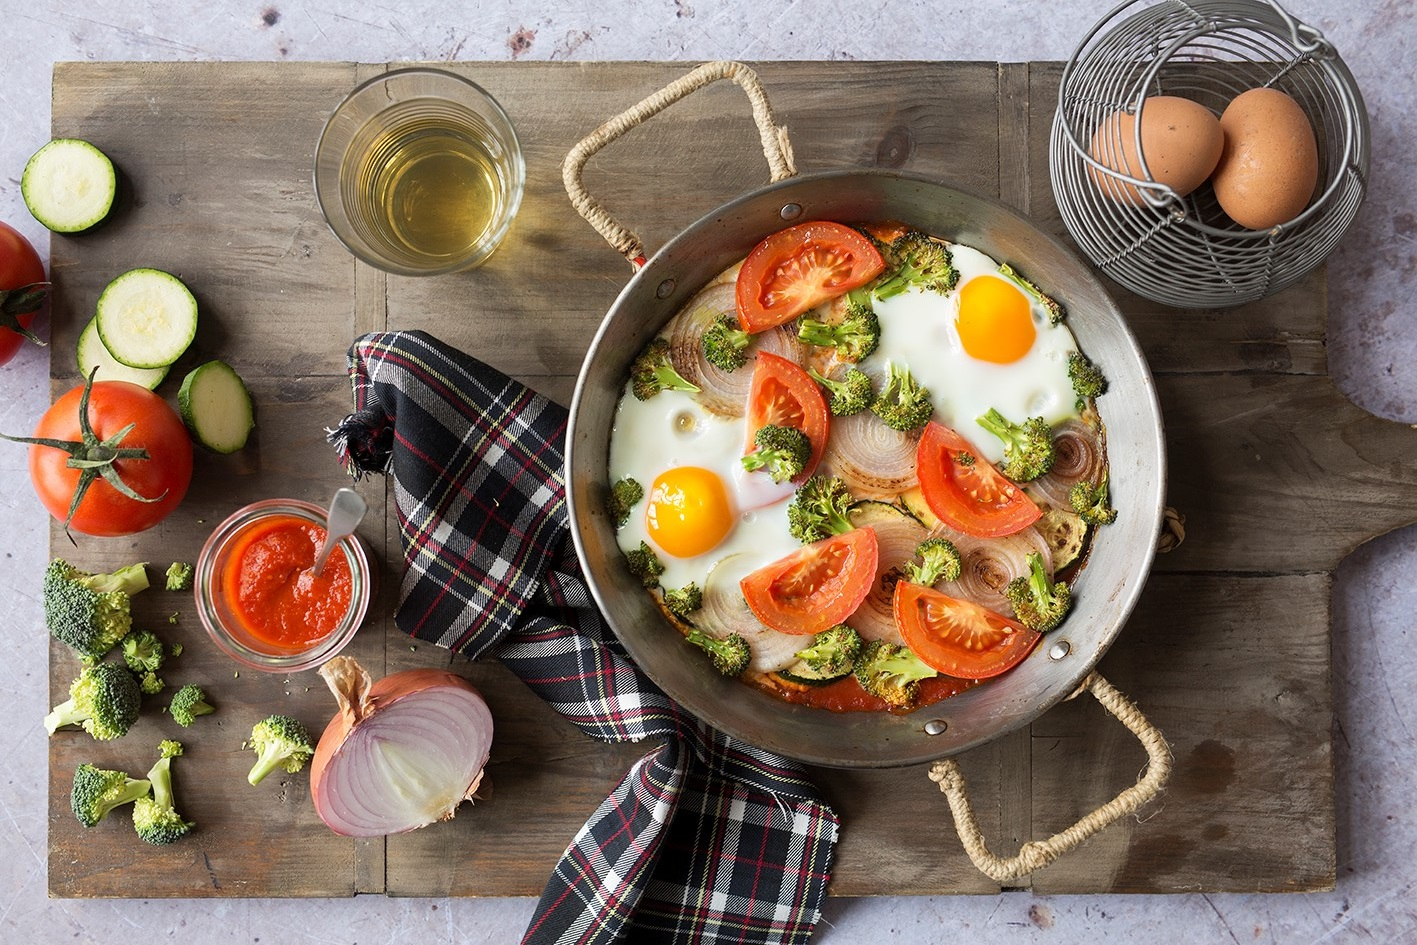 If you feel like having something light, yet delicious, this is the perfect recipe. It's light and perfect for any time of day: breakfast, brunch, lunch or dinner. #STARFineFoods